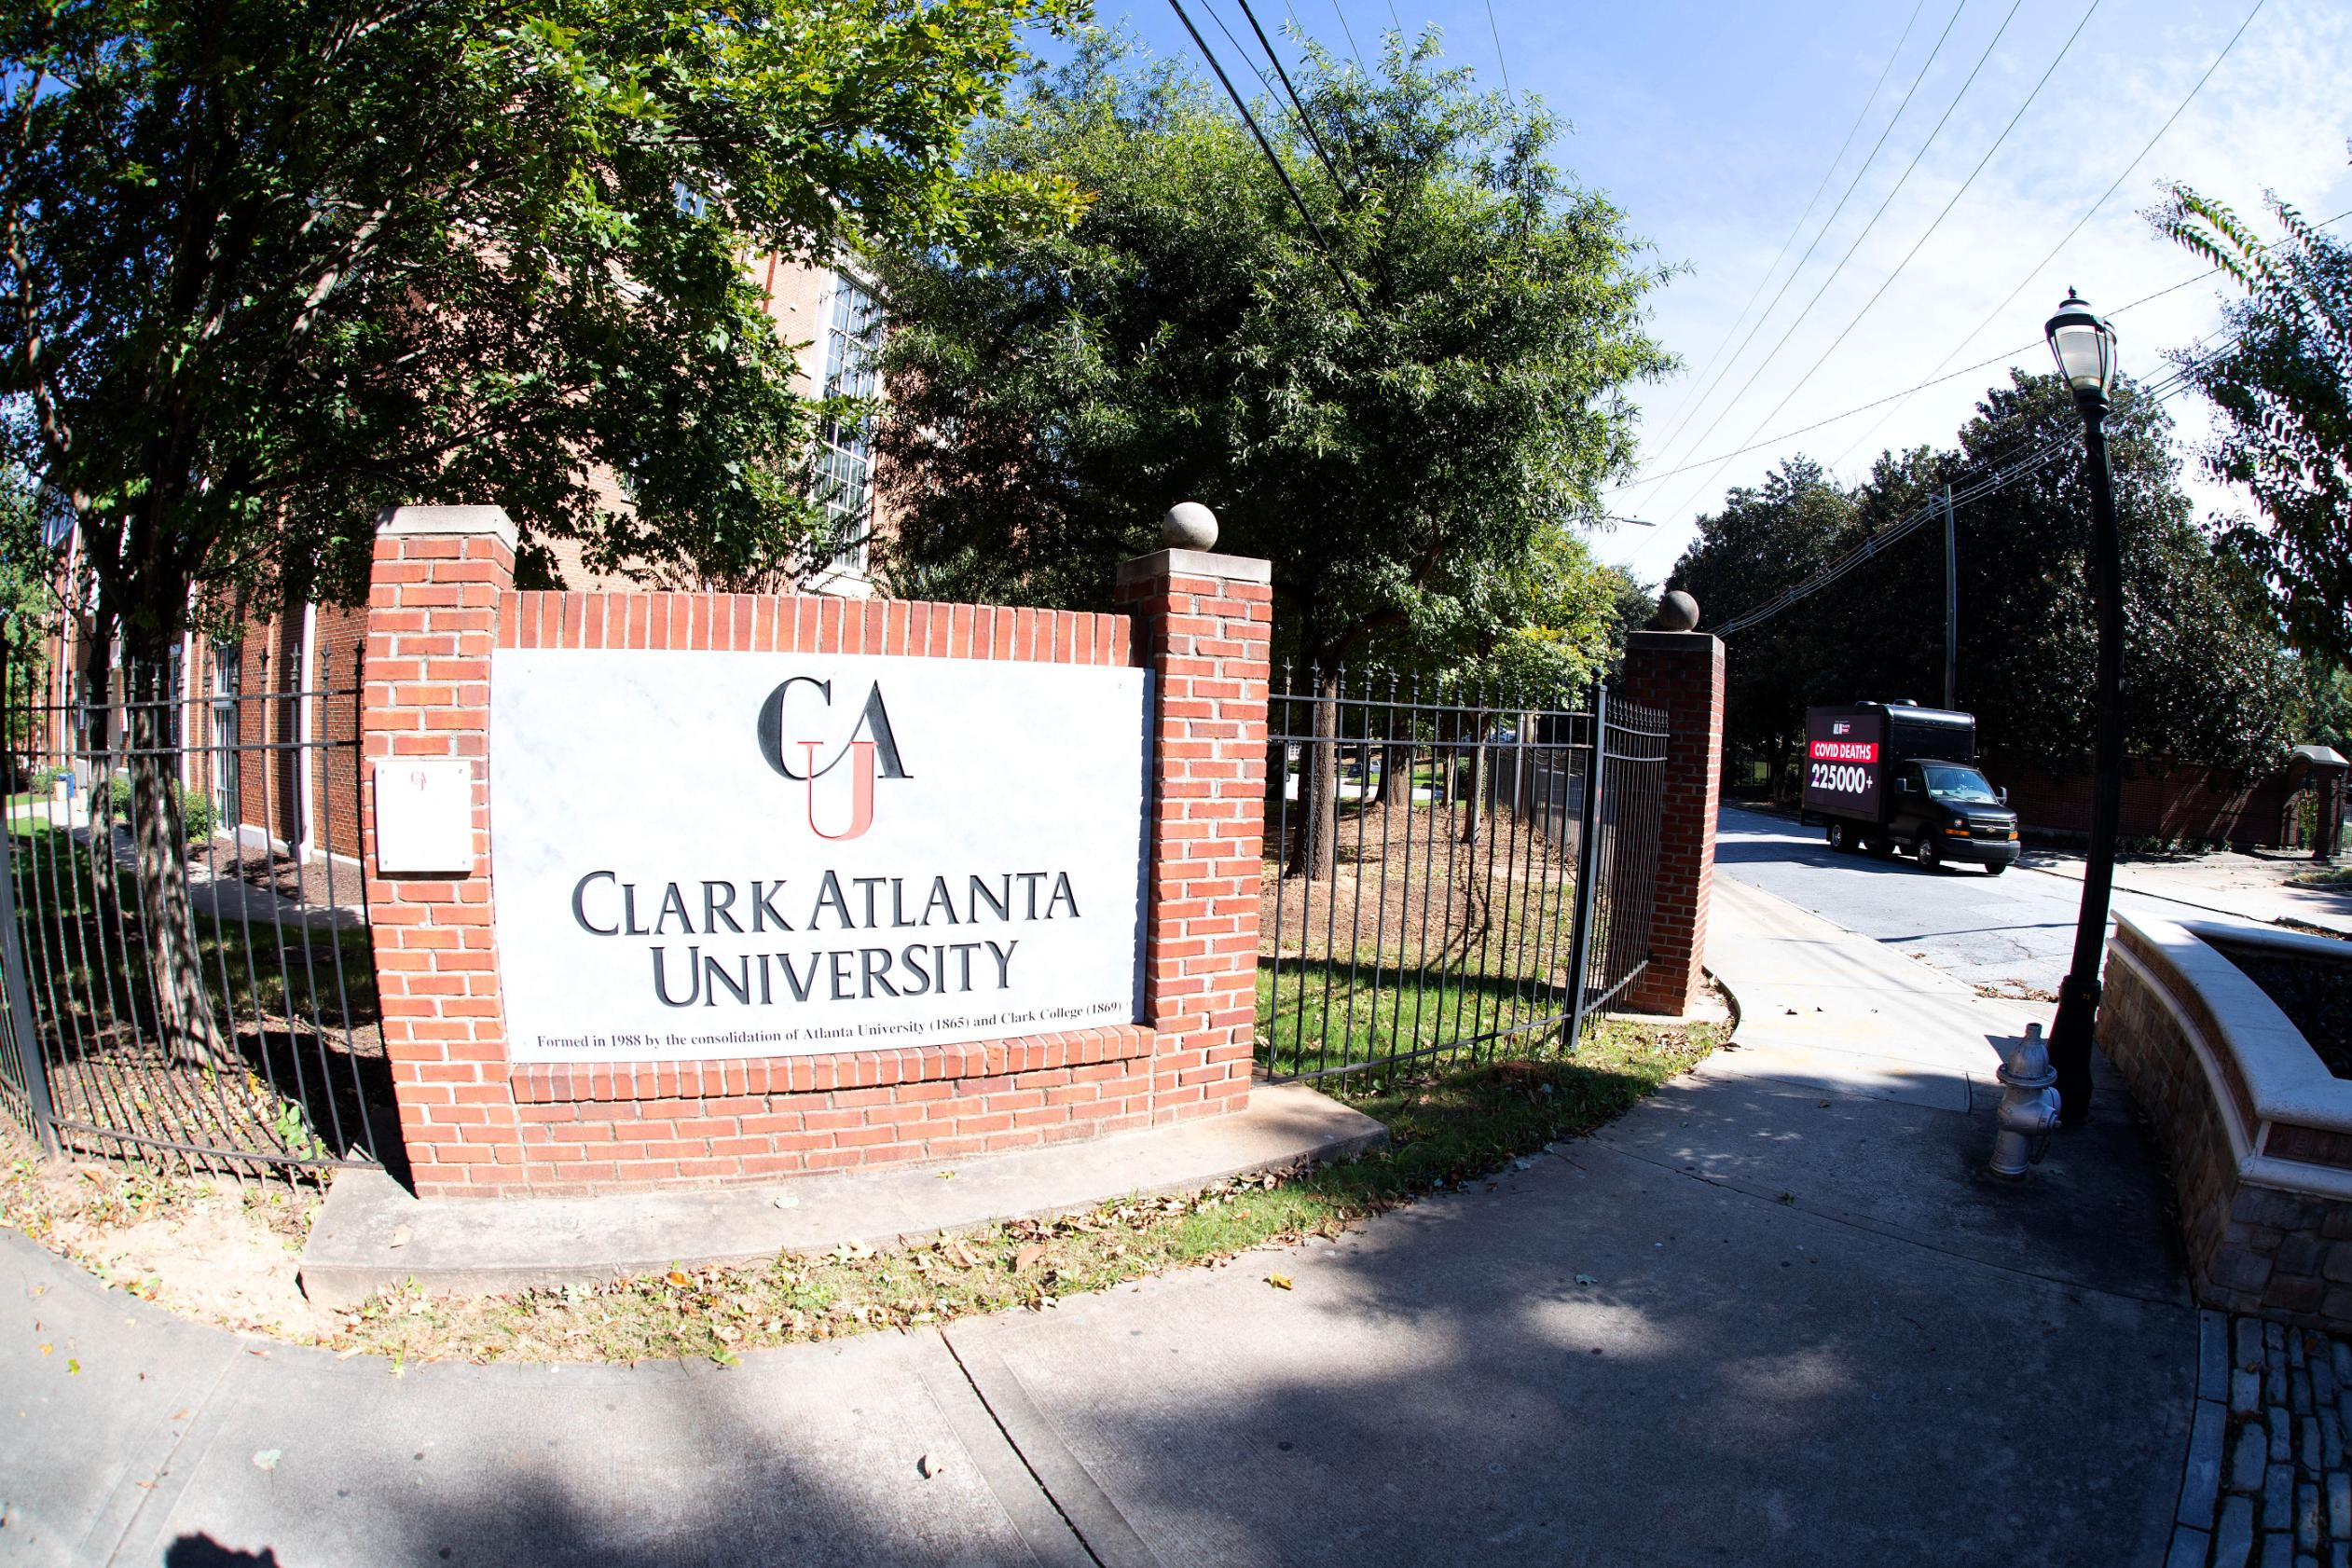 <i>Marcus Ingram/Getty Images North America/Getty Images for ALL IN: The Fig</i><br/>Clark Atlanta University says that it had received a substantial amount of support from the federal government under the CARES Act Higher Education Emergency Relief Fund